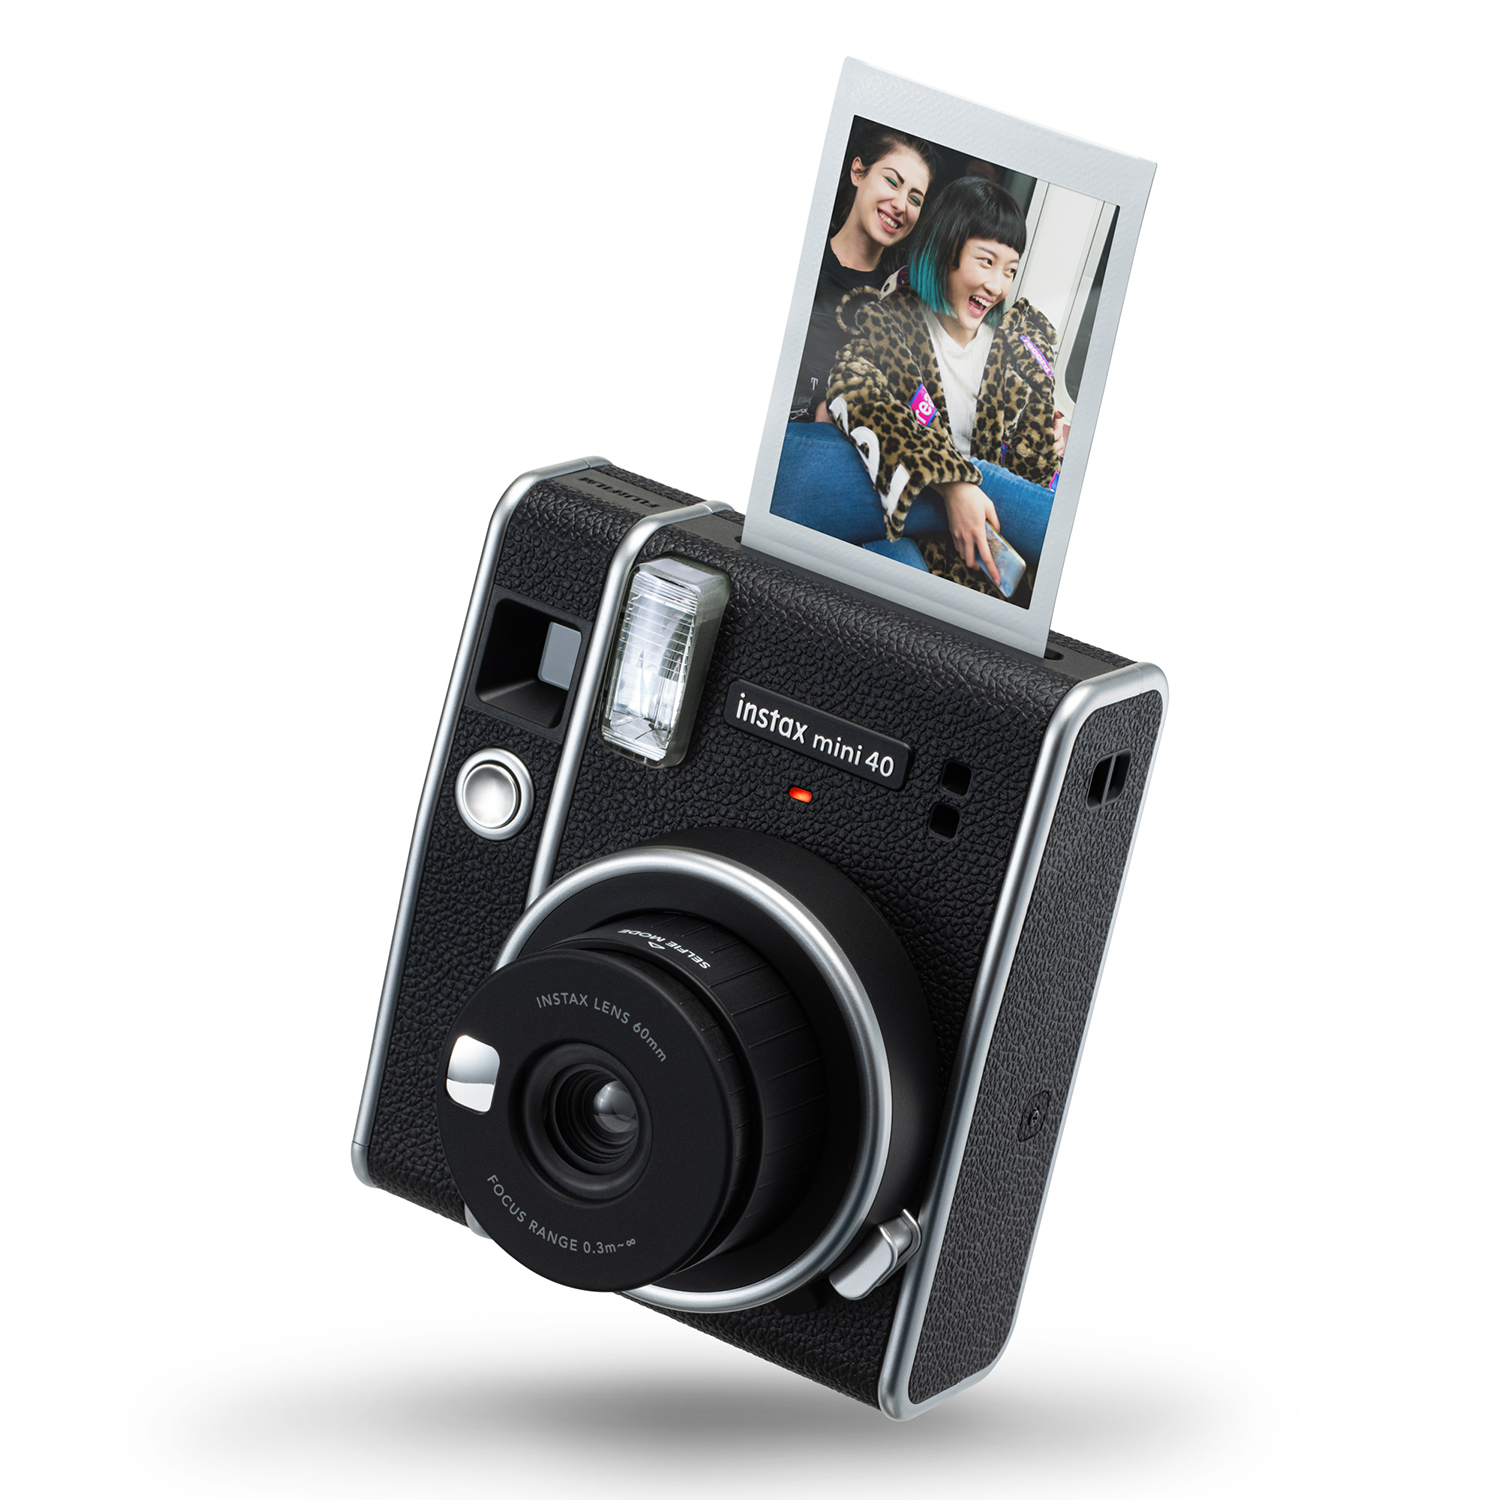 Instax Mini 40 – Pricing And Availability